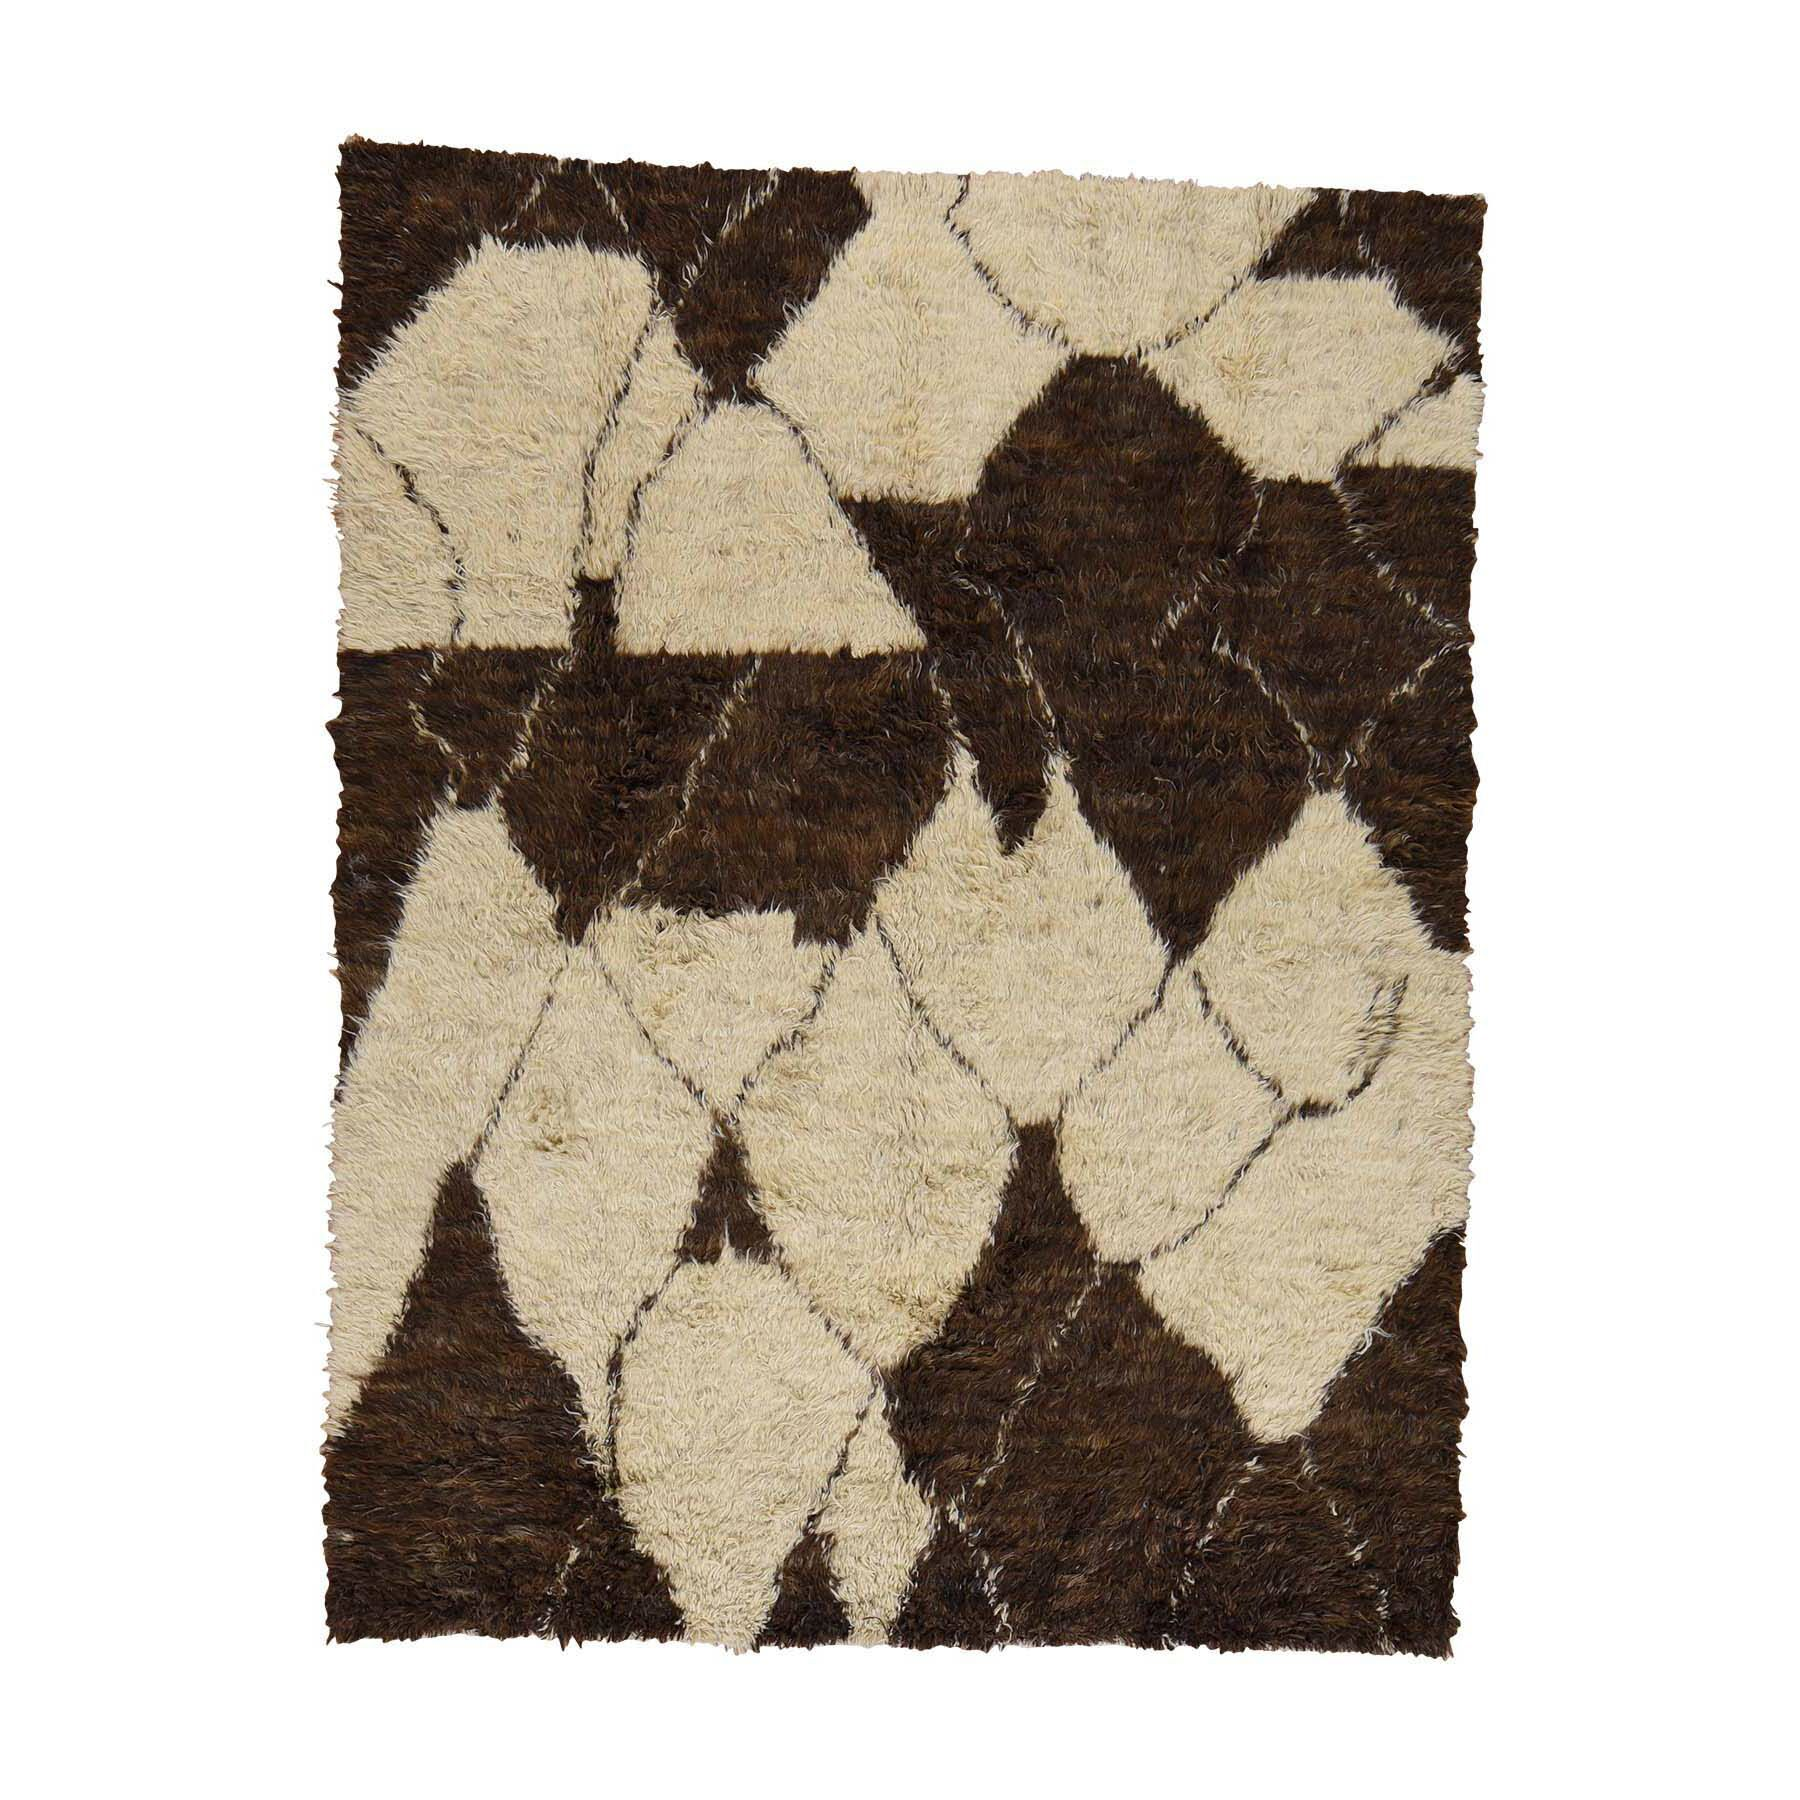 One-of-a-Kind Yasmine Plush Shaggy Hand-Knotted Chocolate Brown Area Rug Rug Size: Rectangle 9' x 12'